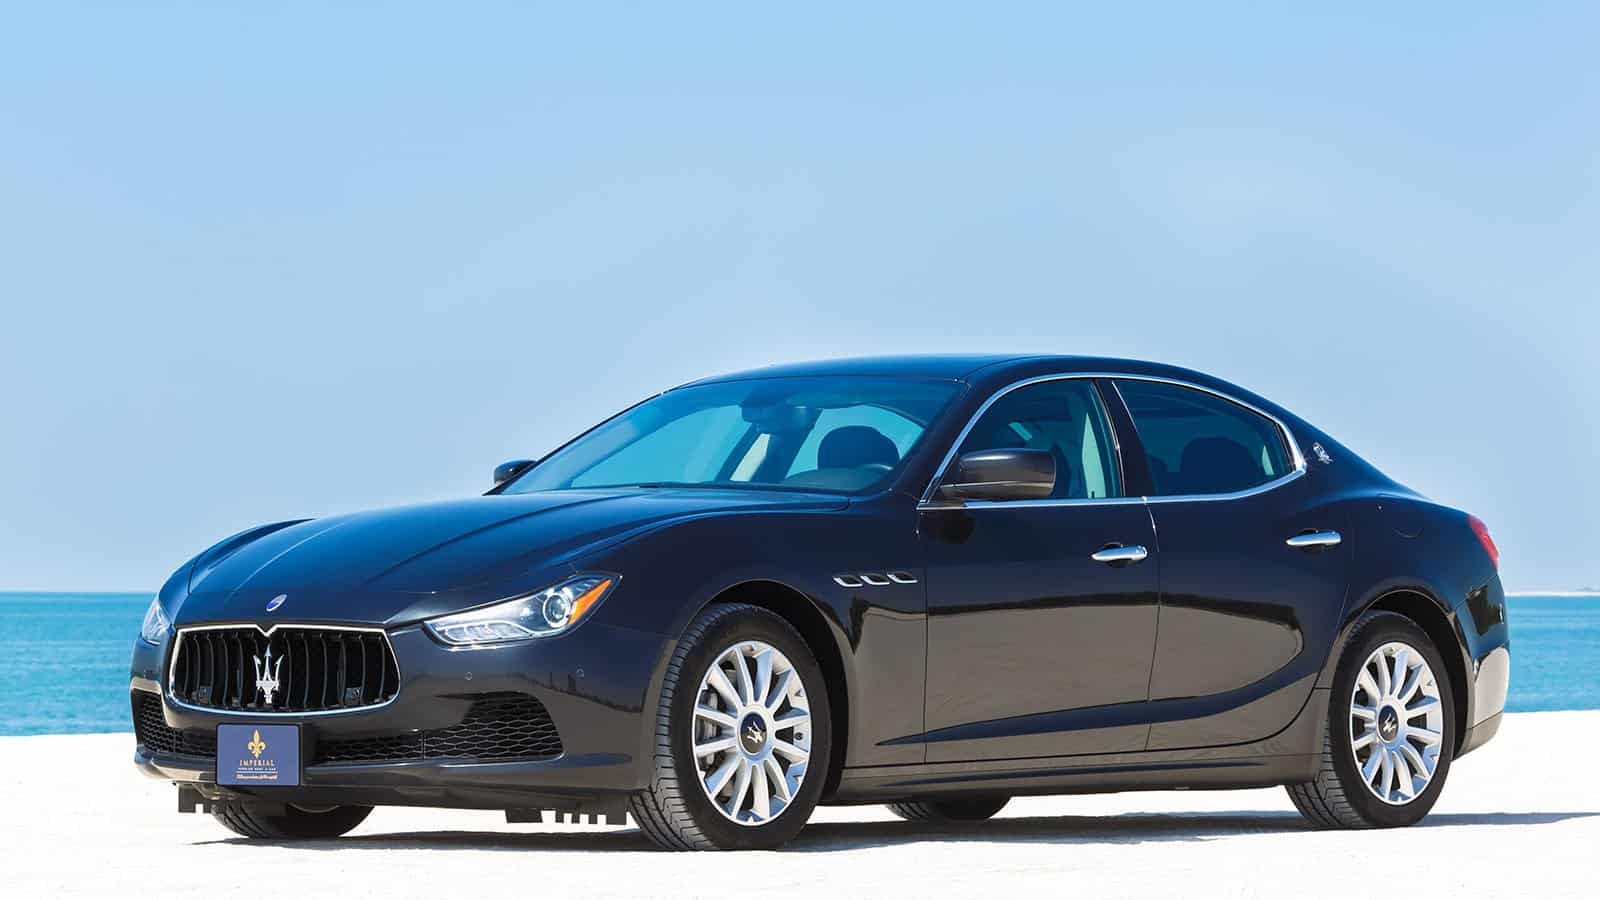 Maserati Ghibli Rent Dubai Imperial Premium Rent A Car